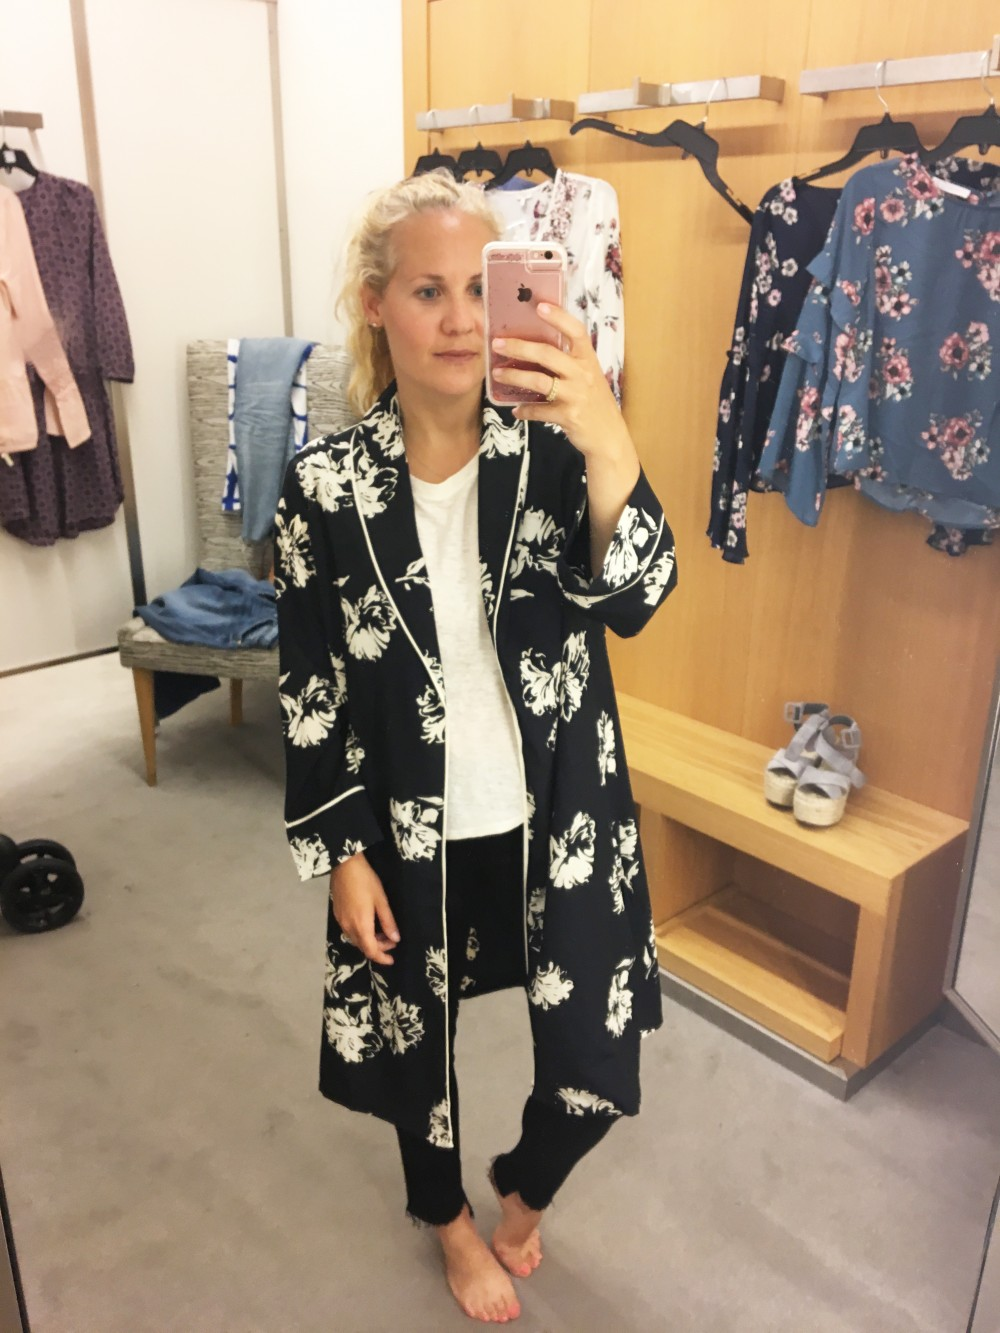 Dressing Room Diaries- Nordstrom Anniversary Sale-Fall Tops-Blogger Picks for the NSale-Nordstrom Sale-Fall Style-Fall Fashion 2017-Have Need Want 7